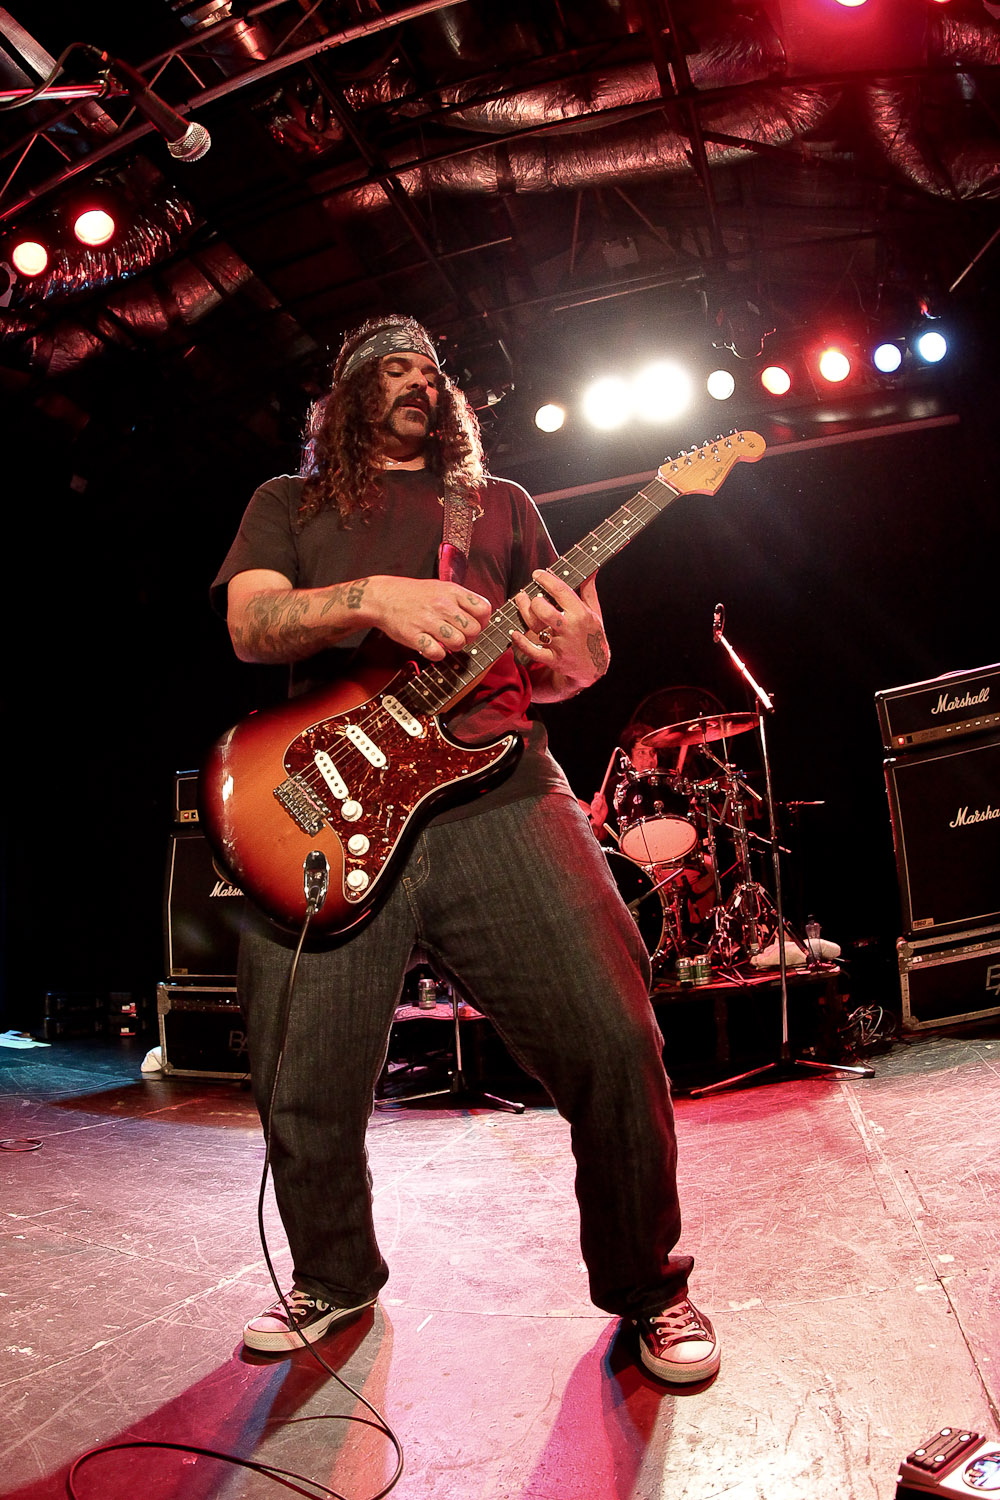 Brant Bjork & The Bros - Cherry Rock Festival, May 2014